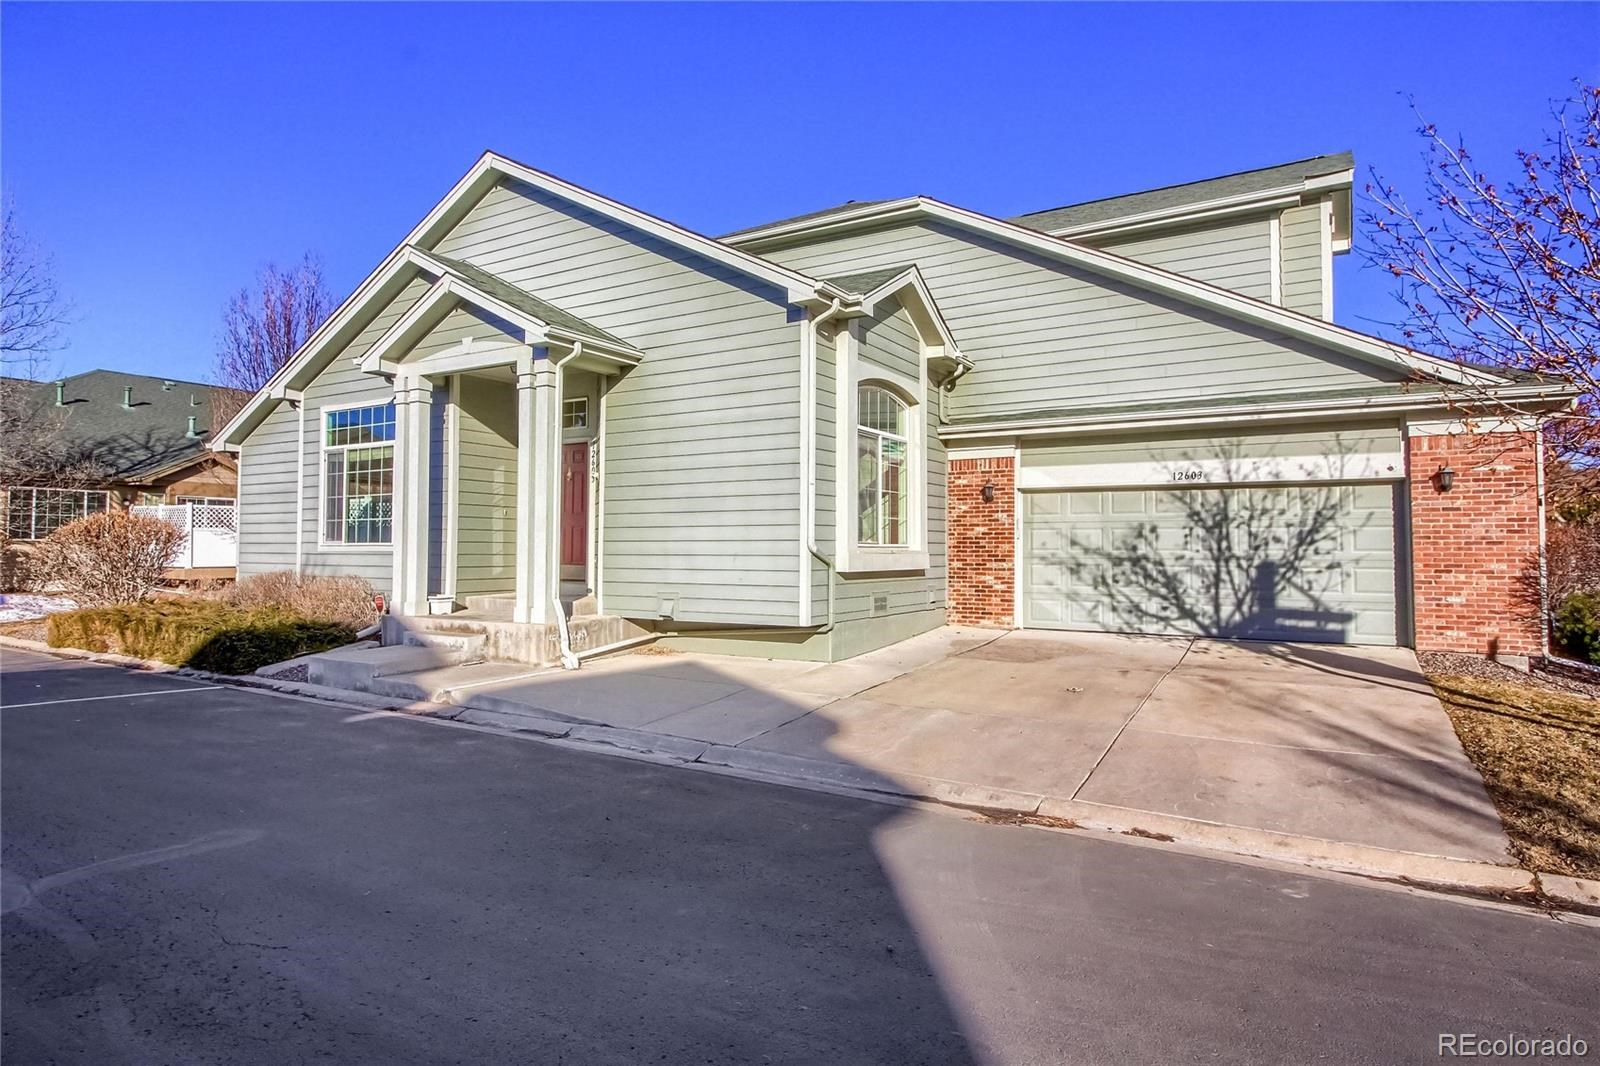 MLS# 8257624 - 1 - 12603 Knox Point, Broomfield, CO 80020